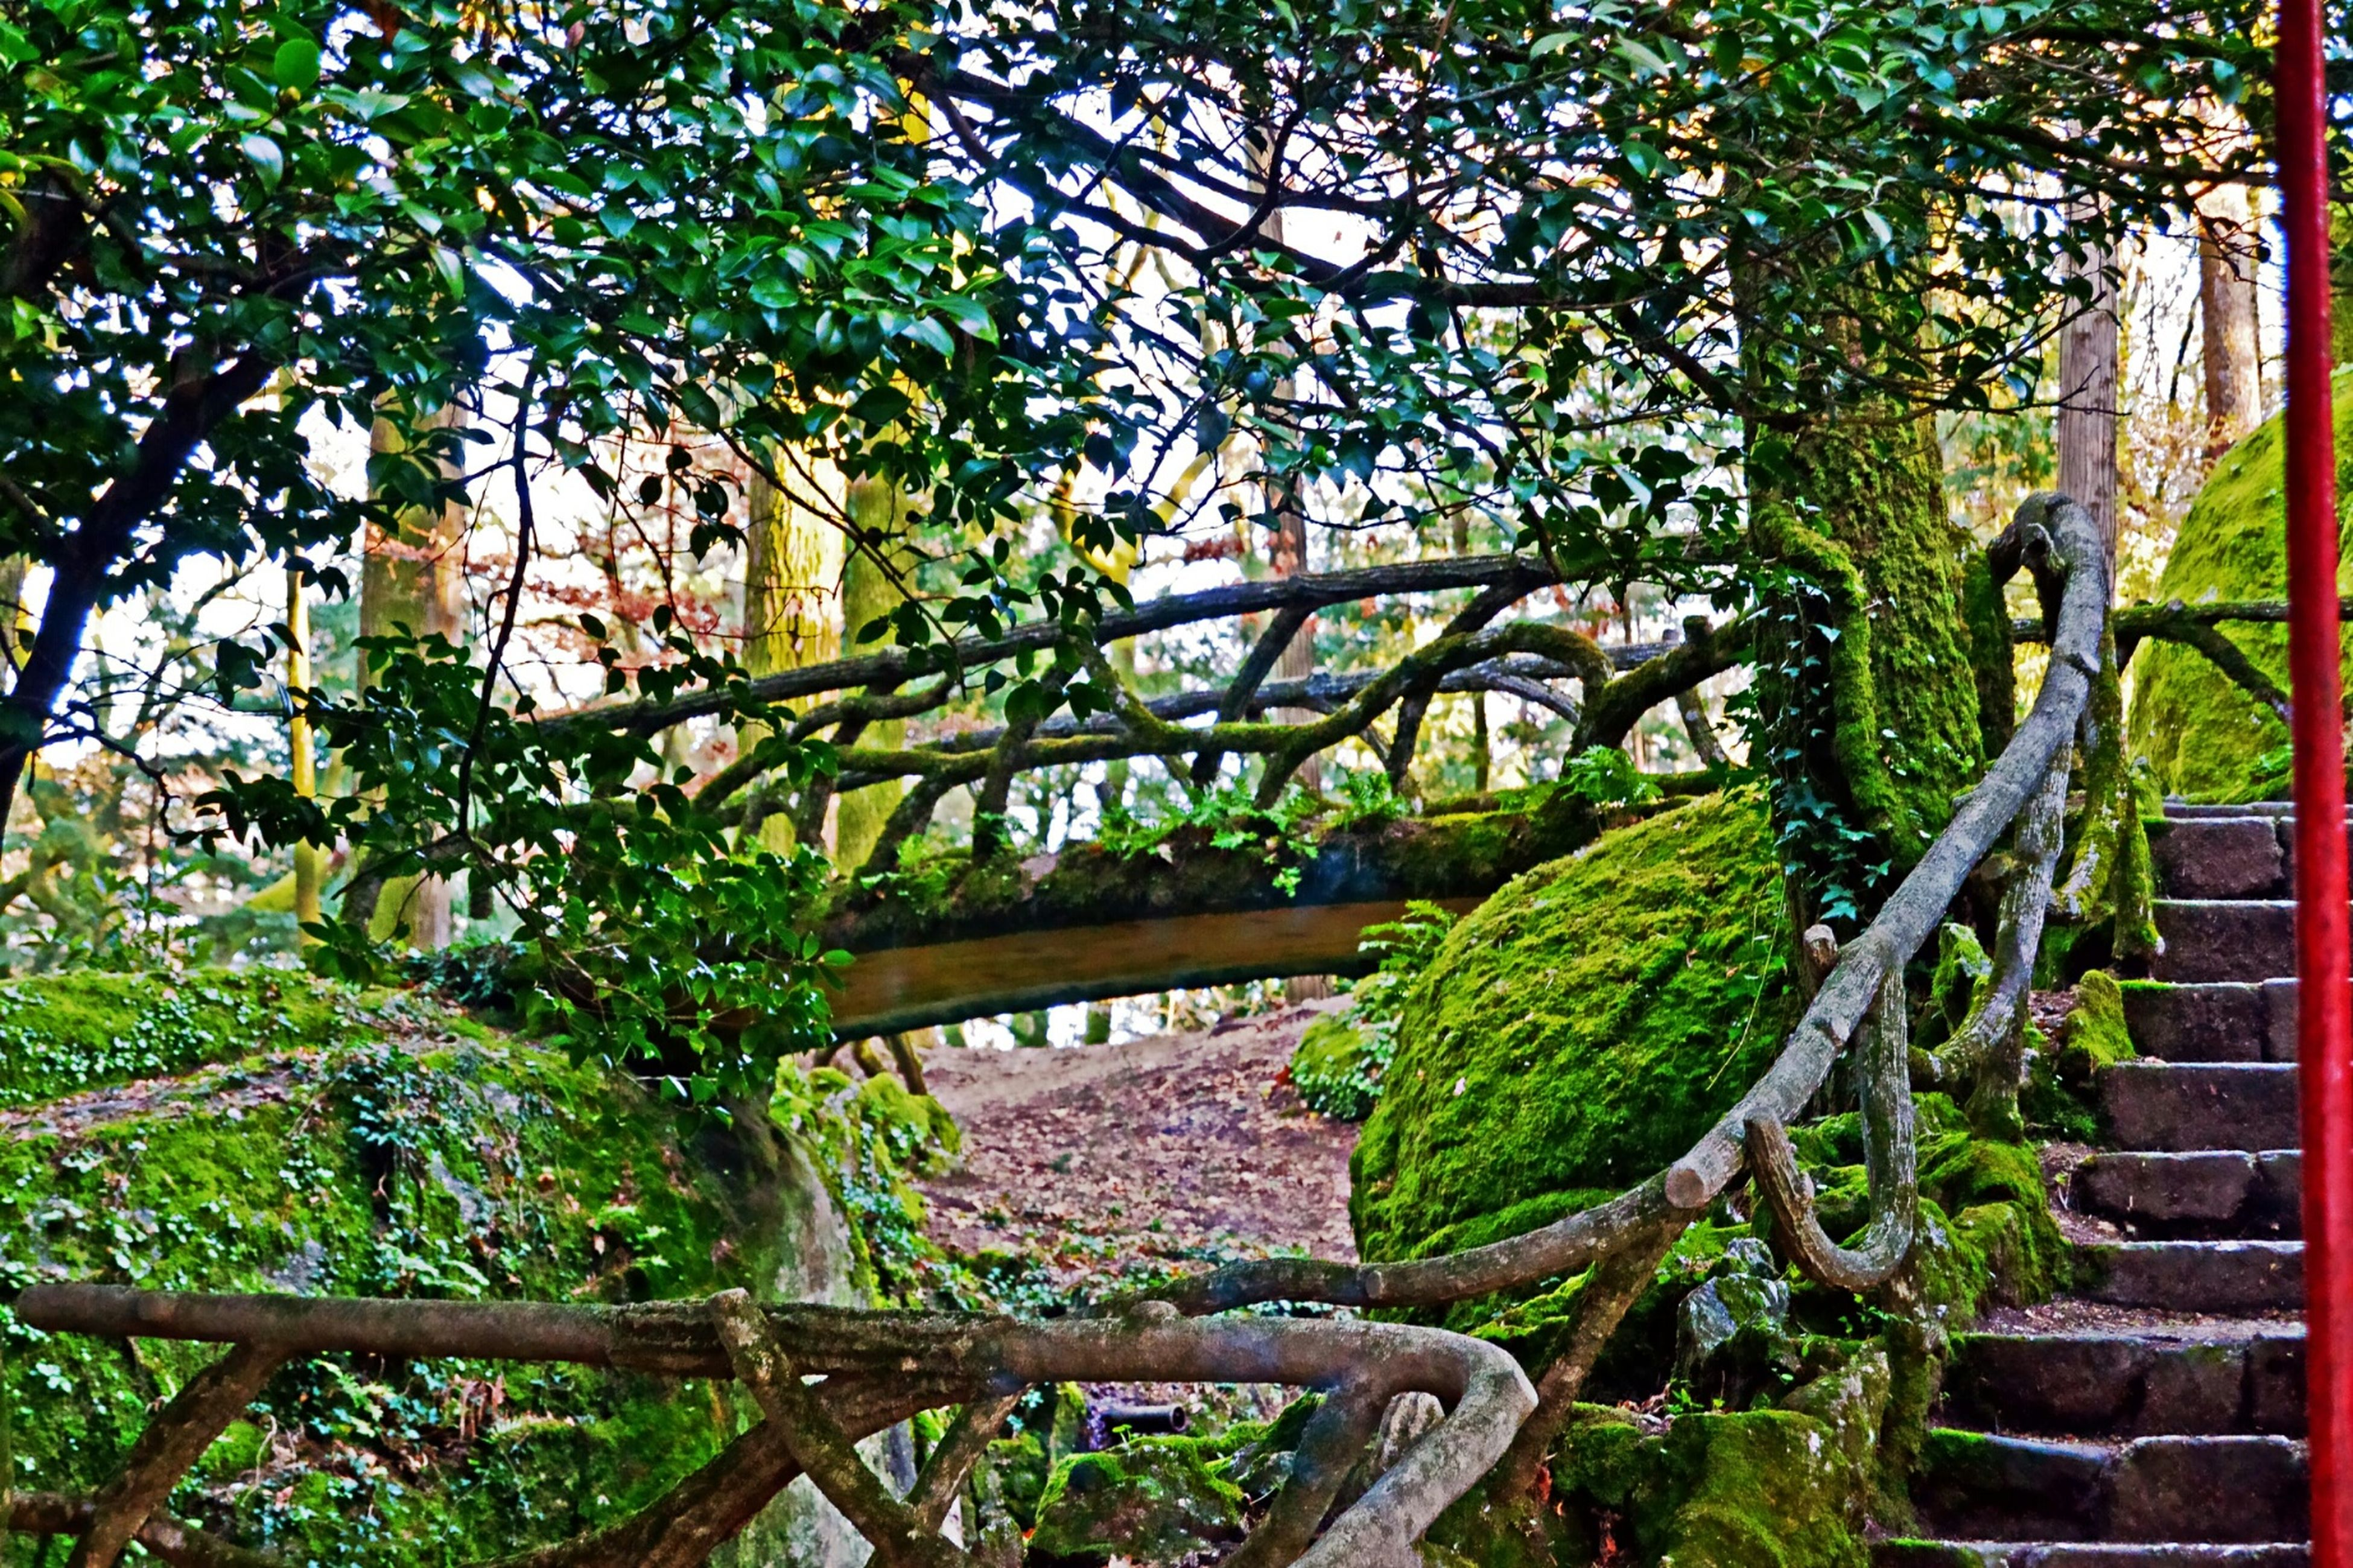 growth, tree, plant, green color, branch, railing, nature, leaf, growing, steps, fence, ivy, built structure, day, wood - material, outdoors, no people, tranquility, low angle view, metal